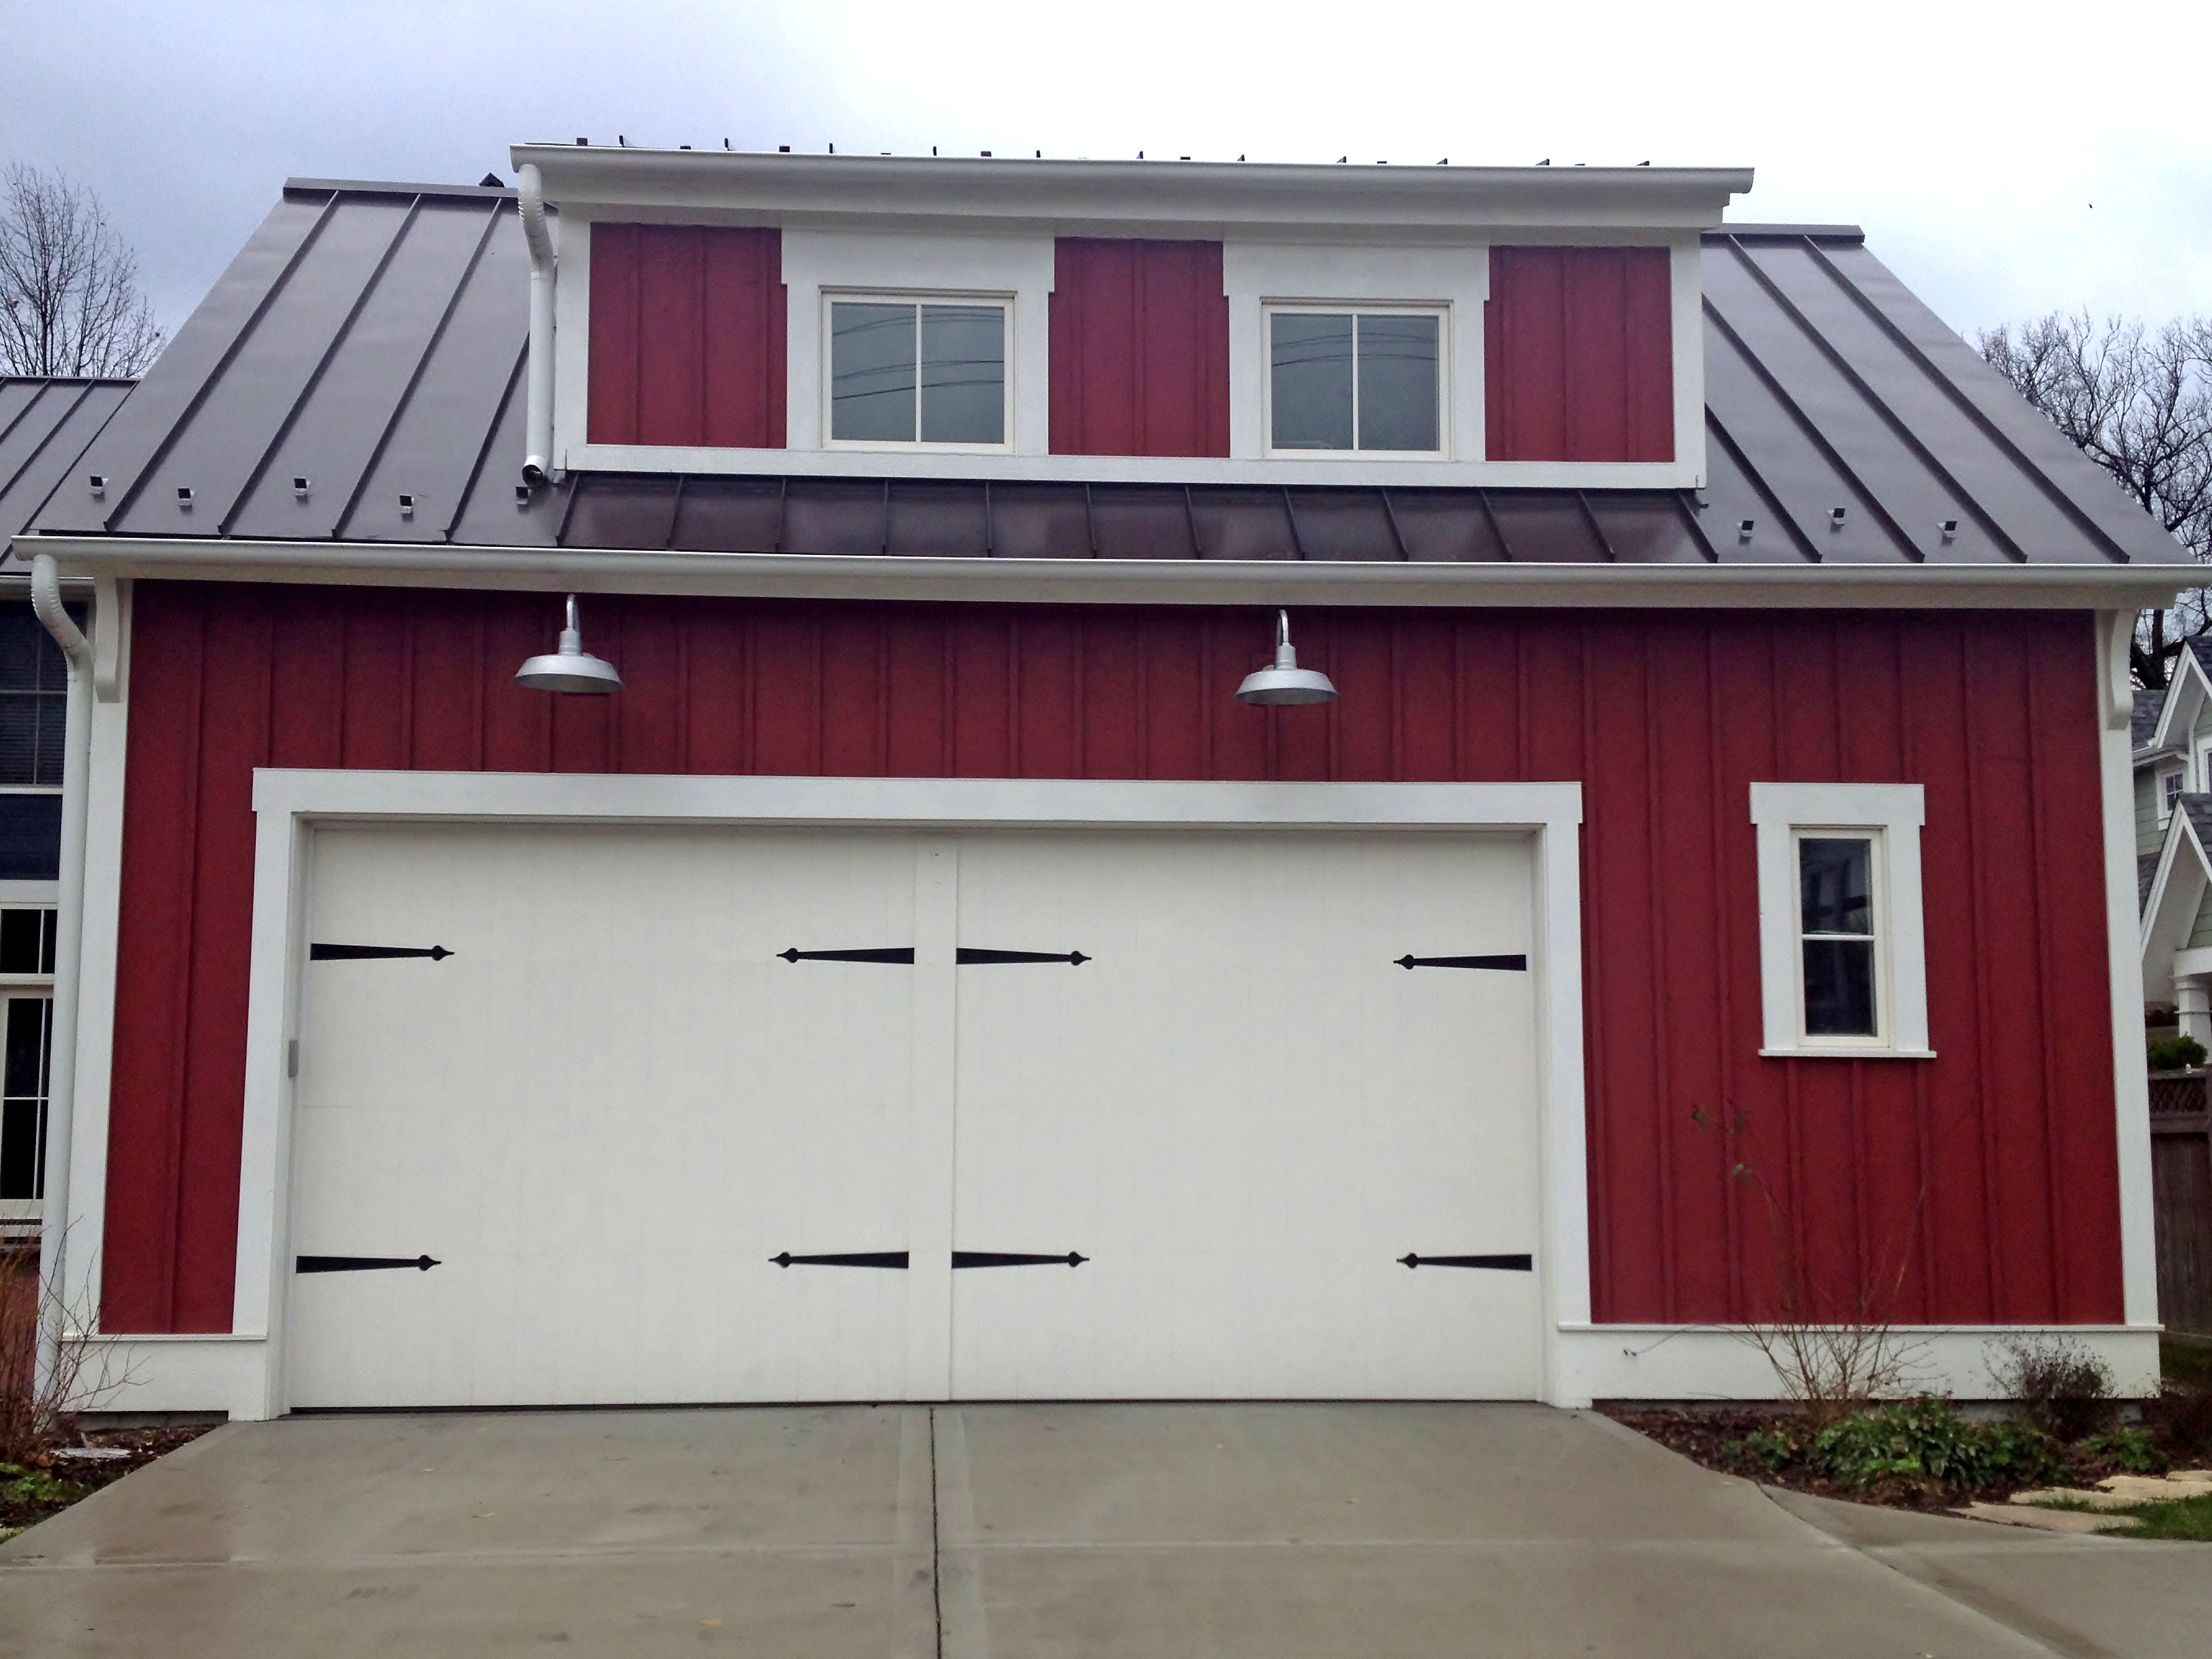 Front garage landscaping design ideas 1118 house decor tips for Farm style garage doors